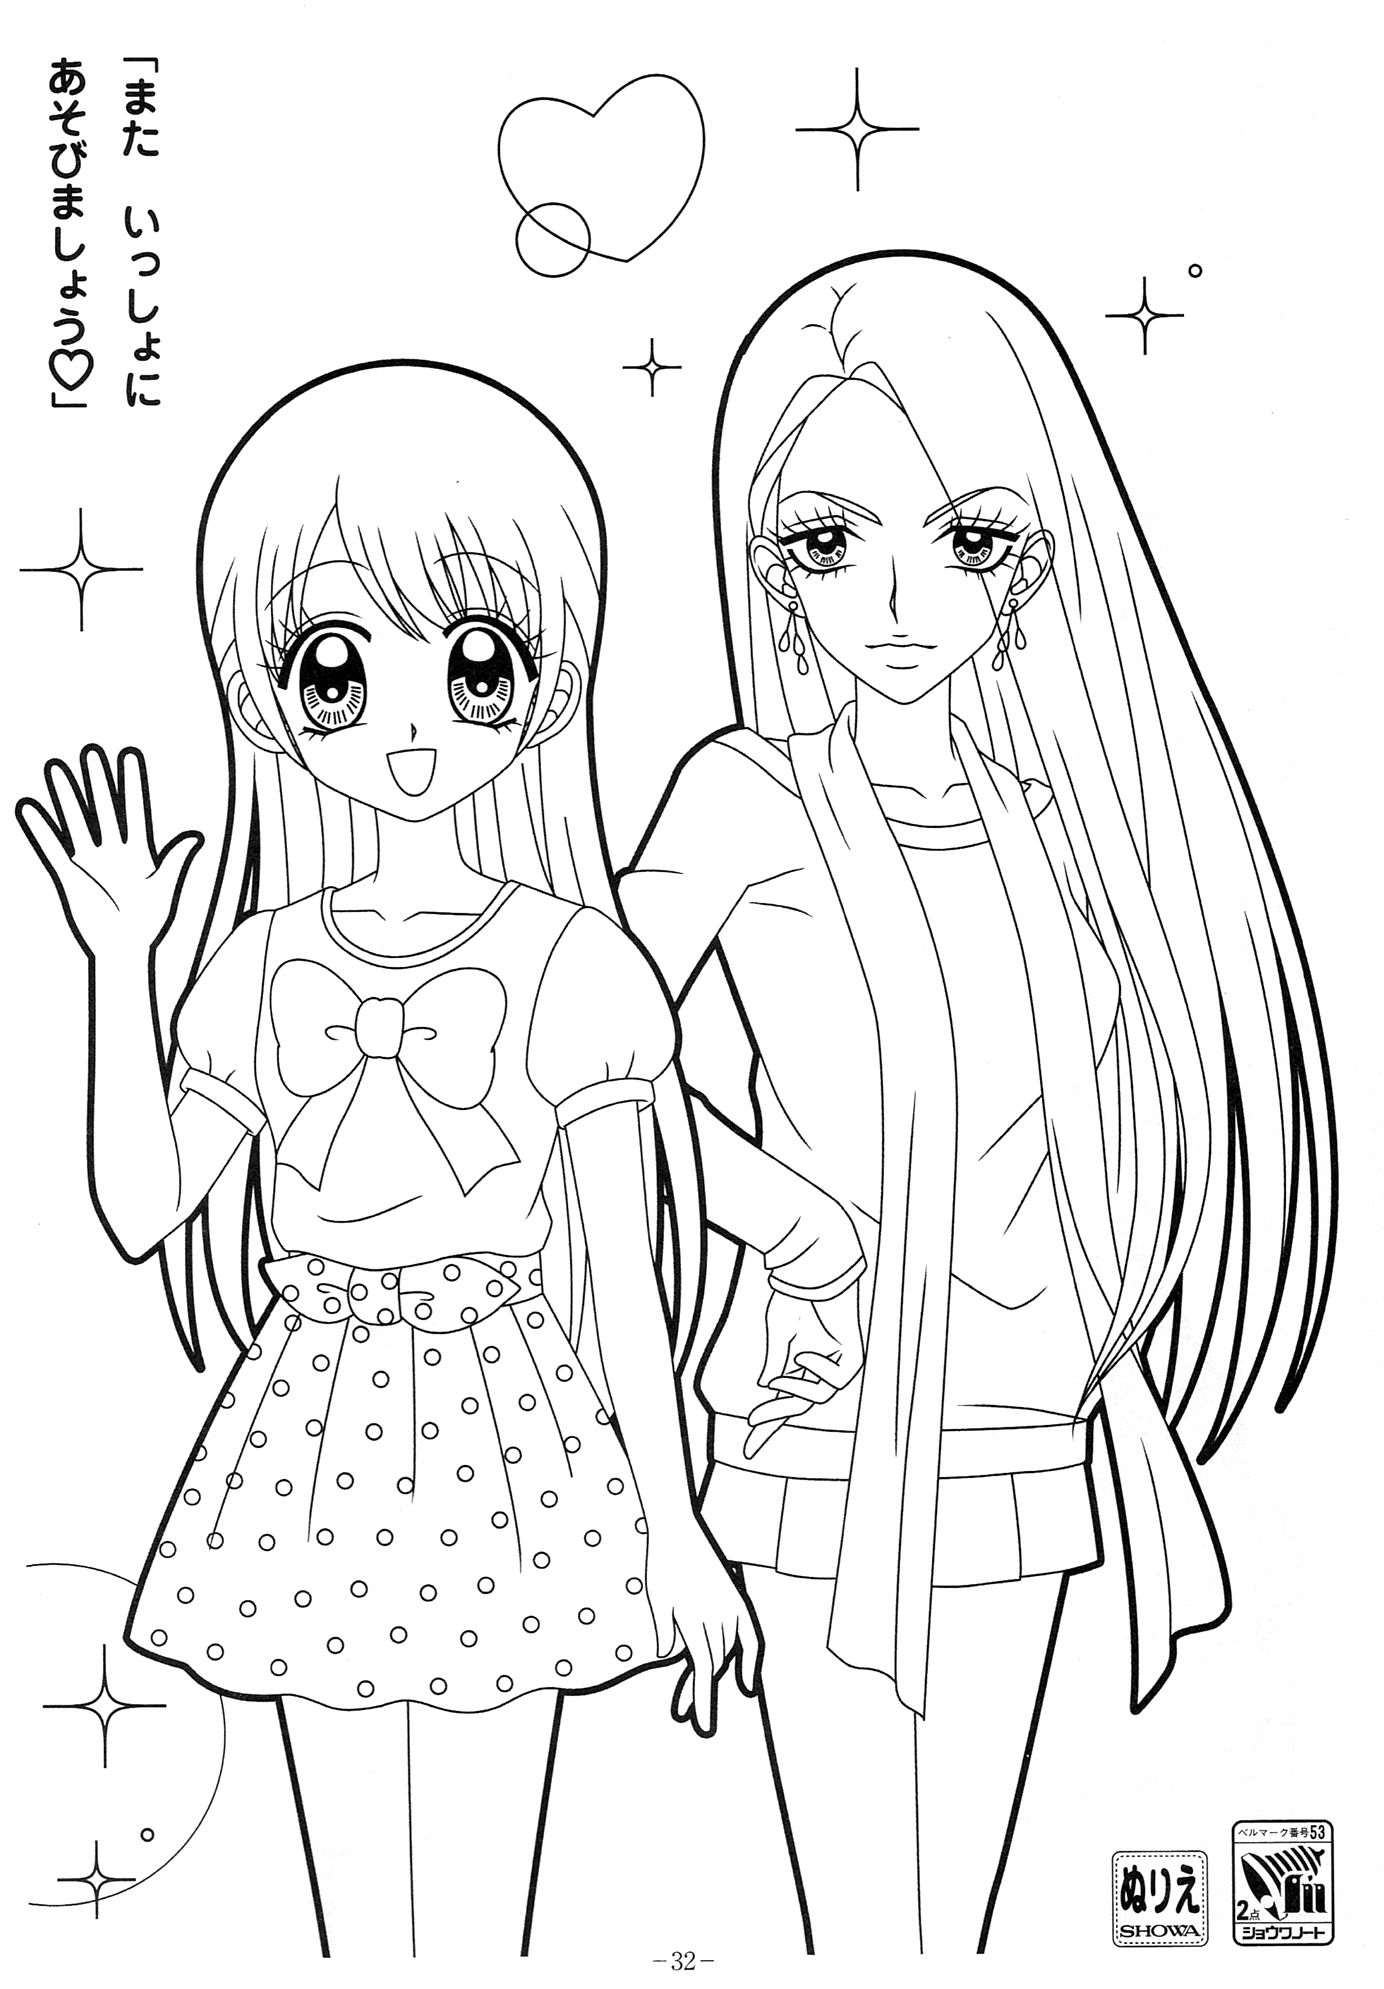 Anime coloring pages for teenagers at getcolorings free